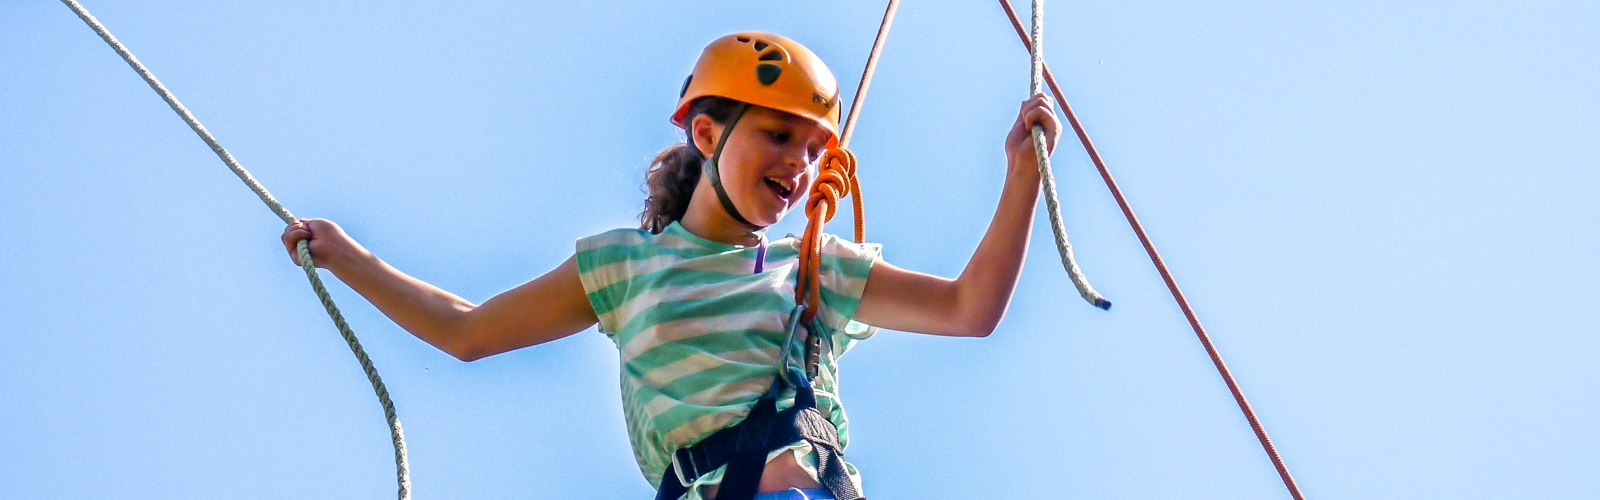 ropes-course-girl